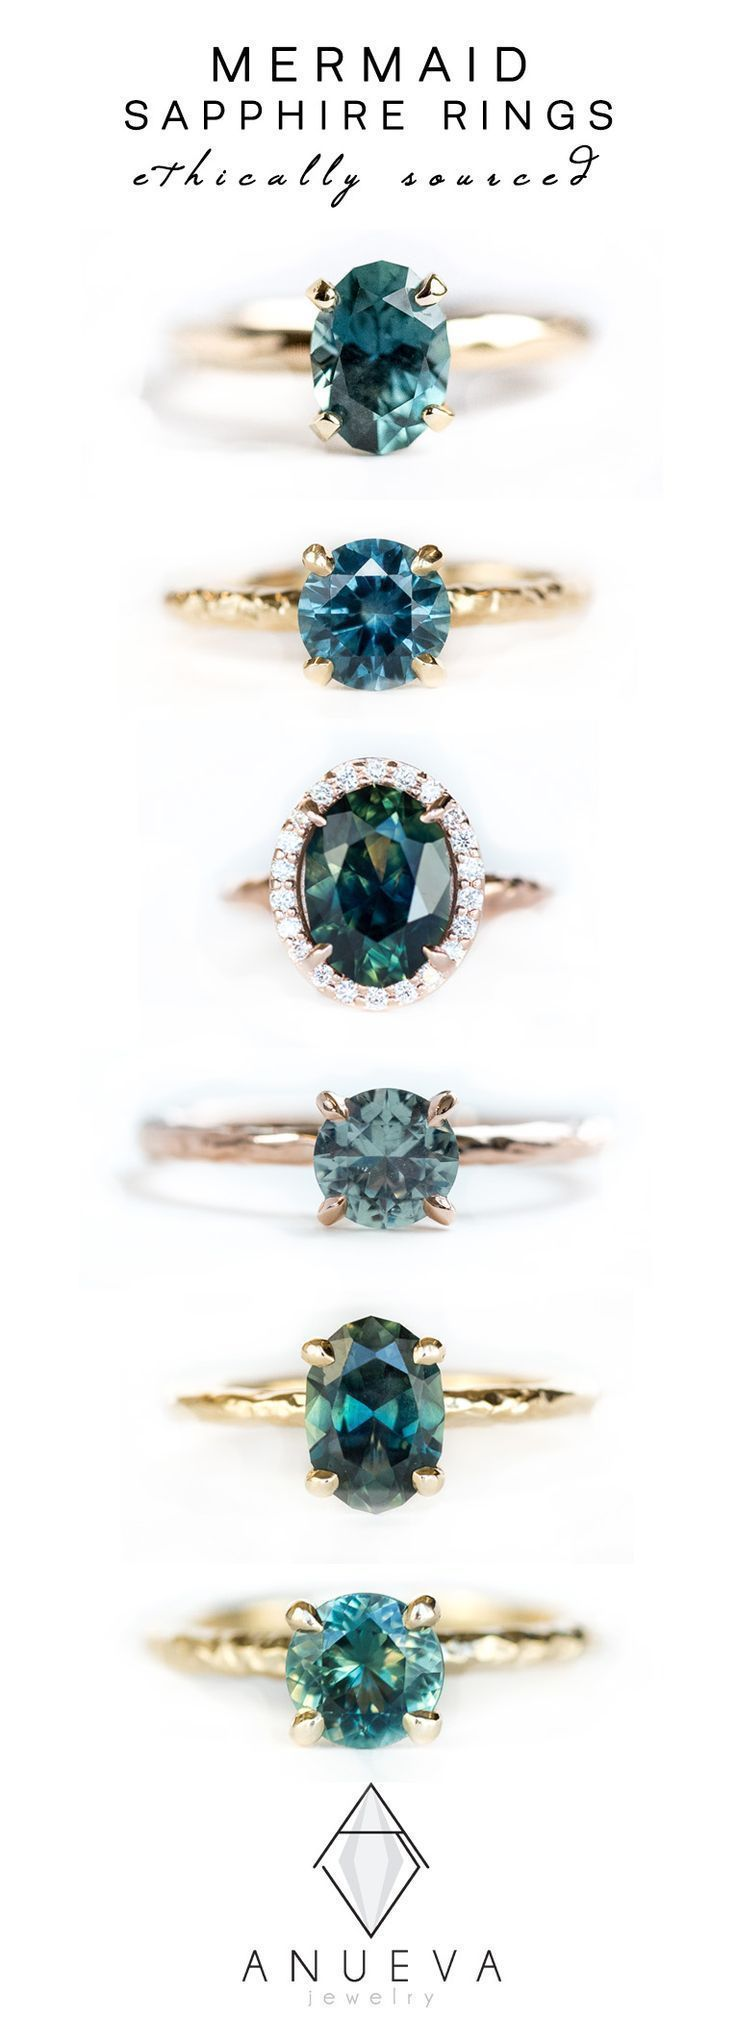 Blue Teal Mermaid Sapphire Rings in Yellow & Rose Gold by Anueva Jewelry #sapph